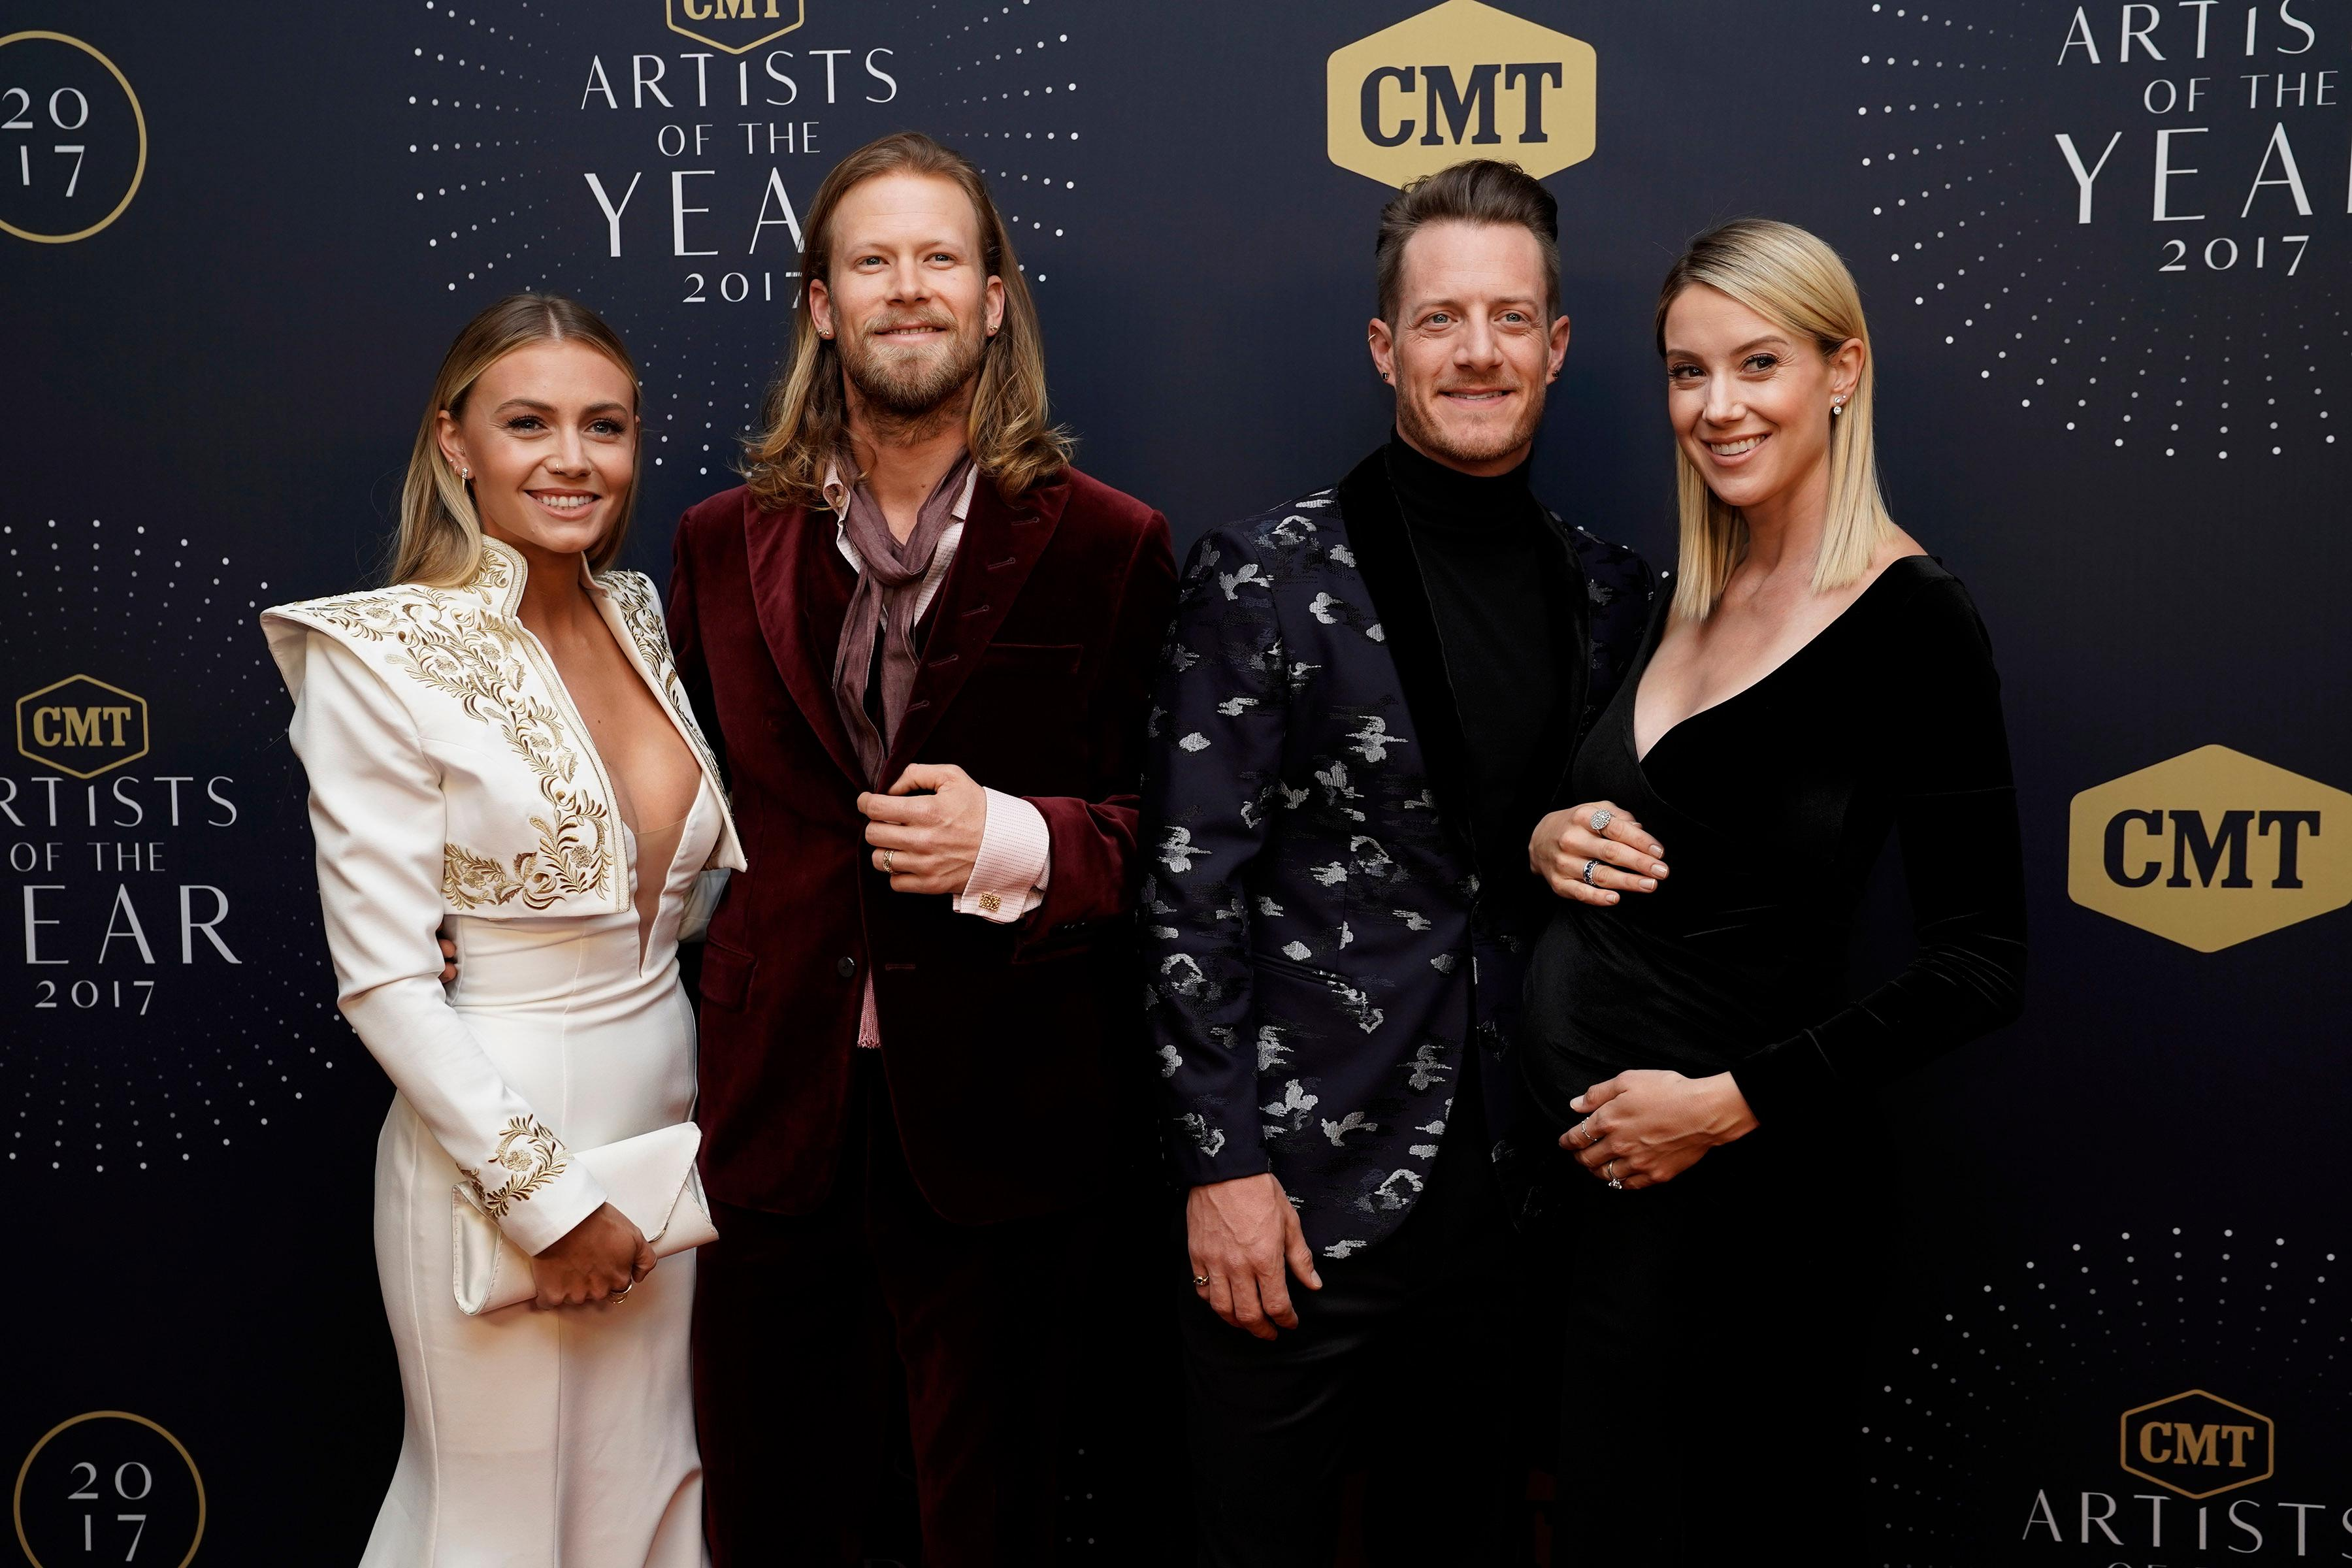 Florida Georgia Line, left, Brian Kelley with wife Brittney and Tyler Hubbard with wife Hayley seen at 2017 CMT Artists of the Year at Schermerhorn Symphony Center on Wednesday, Oct. 18, 2017, in Nashville, Tenn. (Photo by Sanford Myers/Invision/AP)